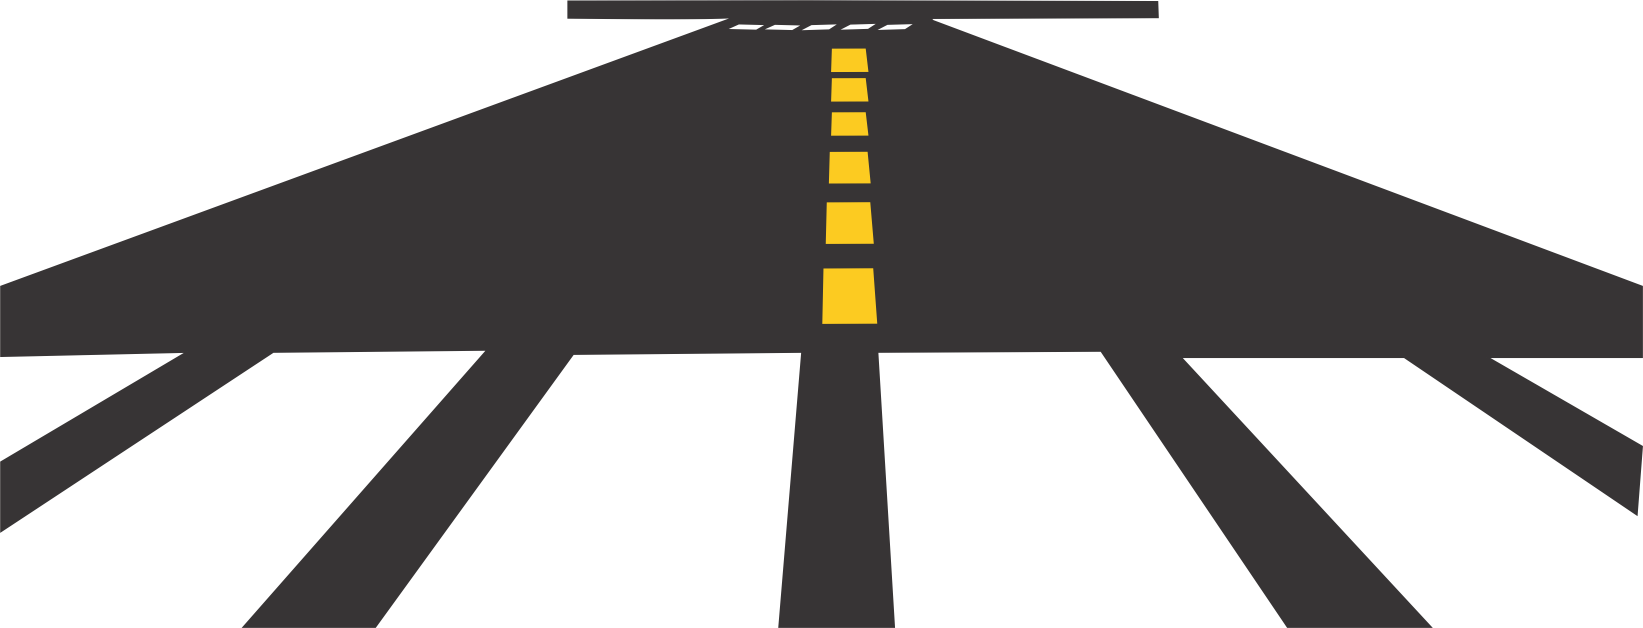 Road PNG Image Without Background | Web Icons PNG